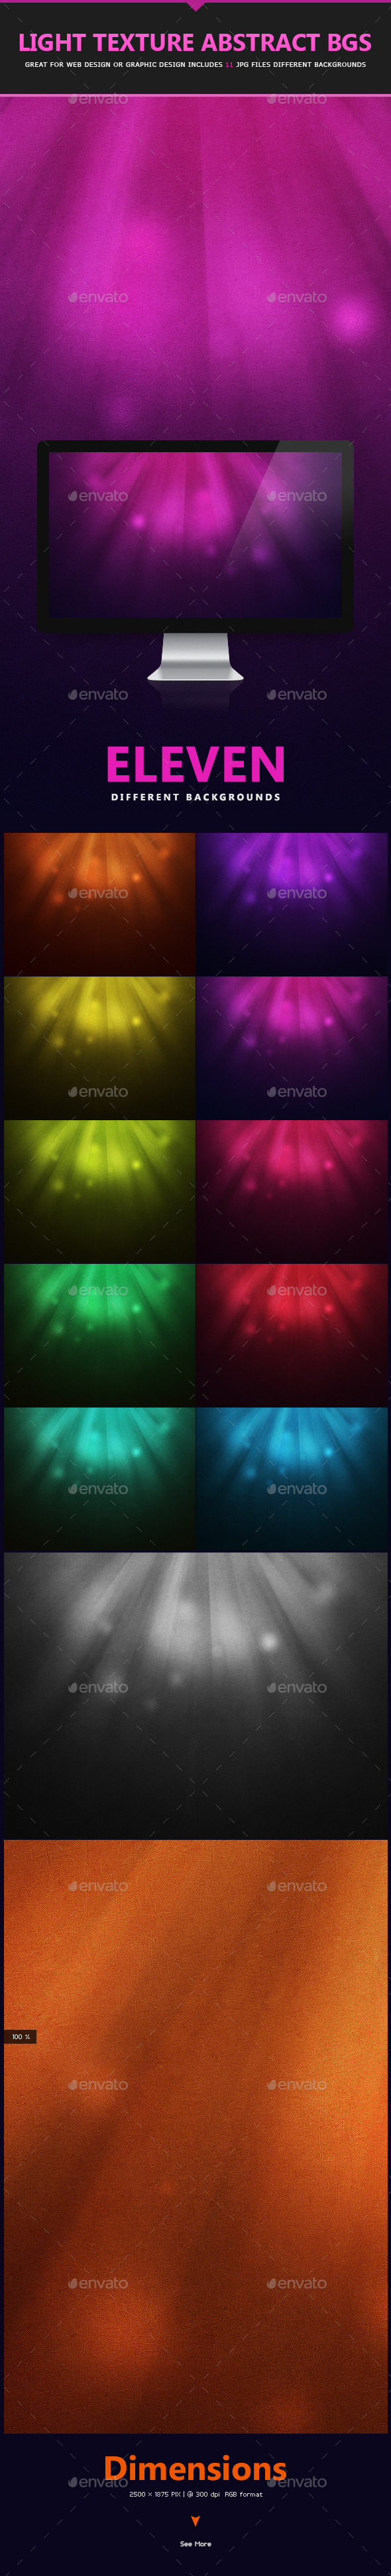 Light texture Abstract Backgrounds - Abstract Backgrounds